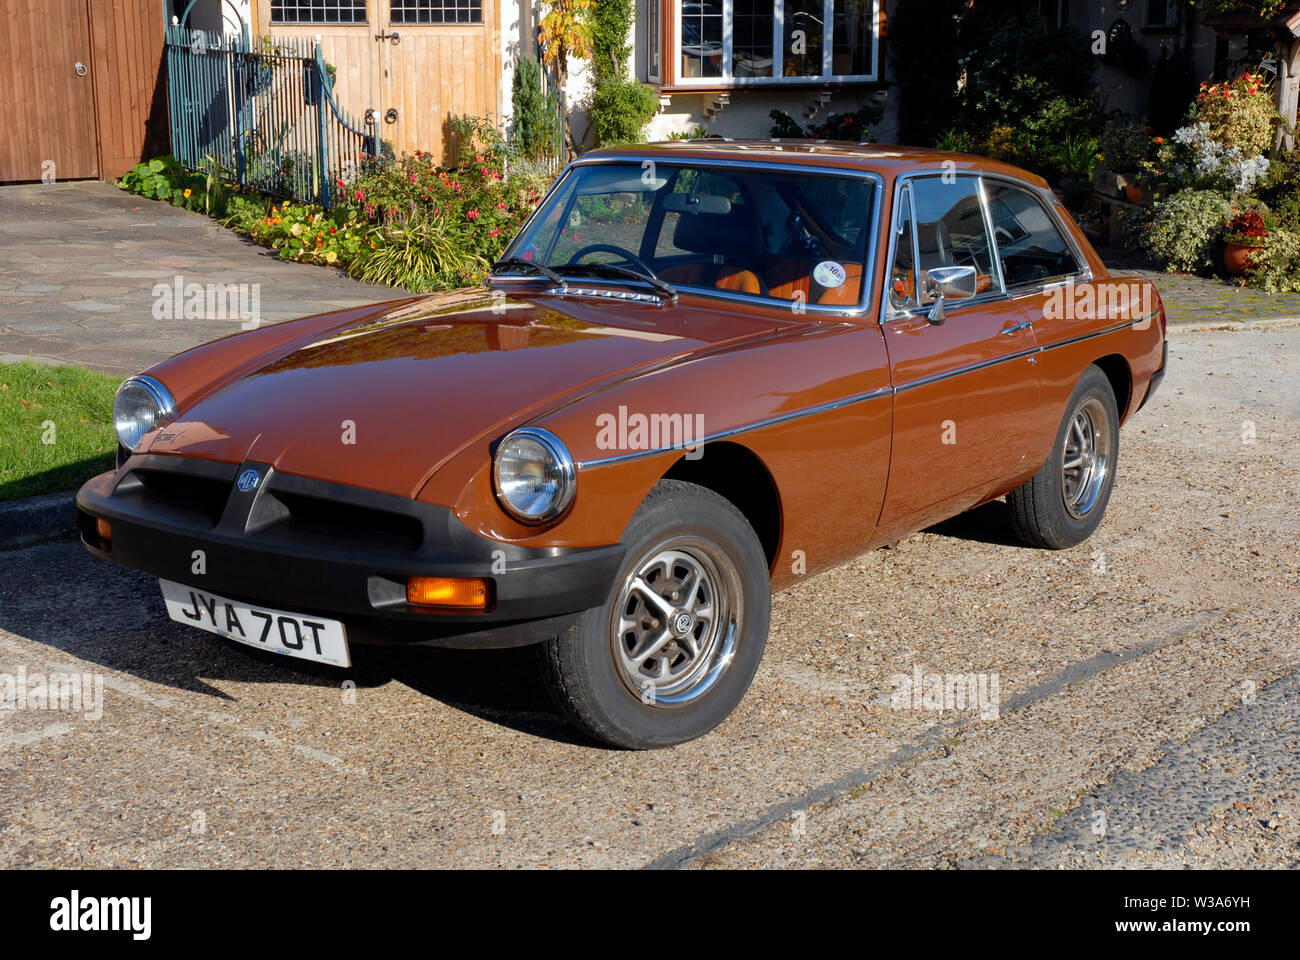 Mgb Gt Stock Photos & Mgb Gt Stock Images - Alamy